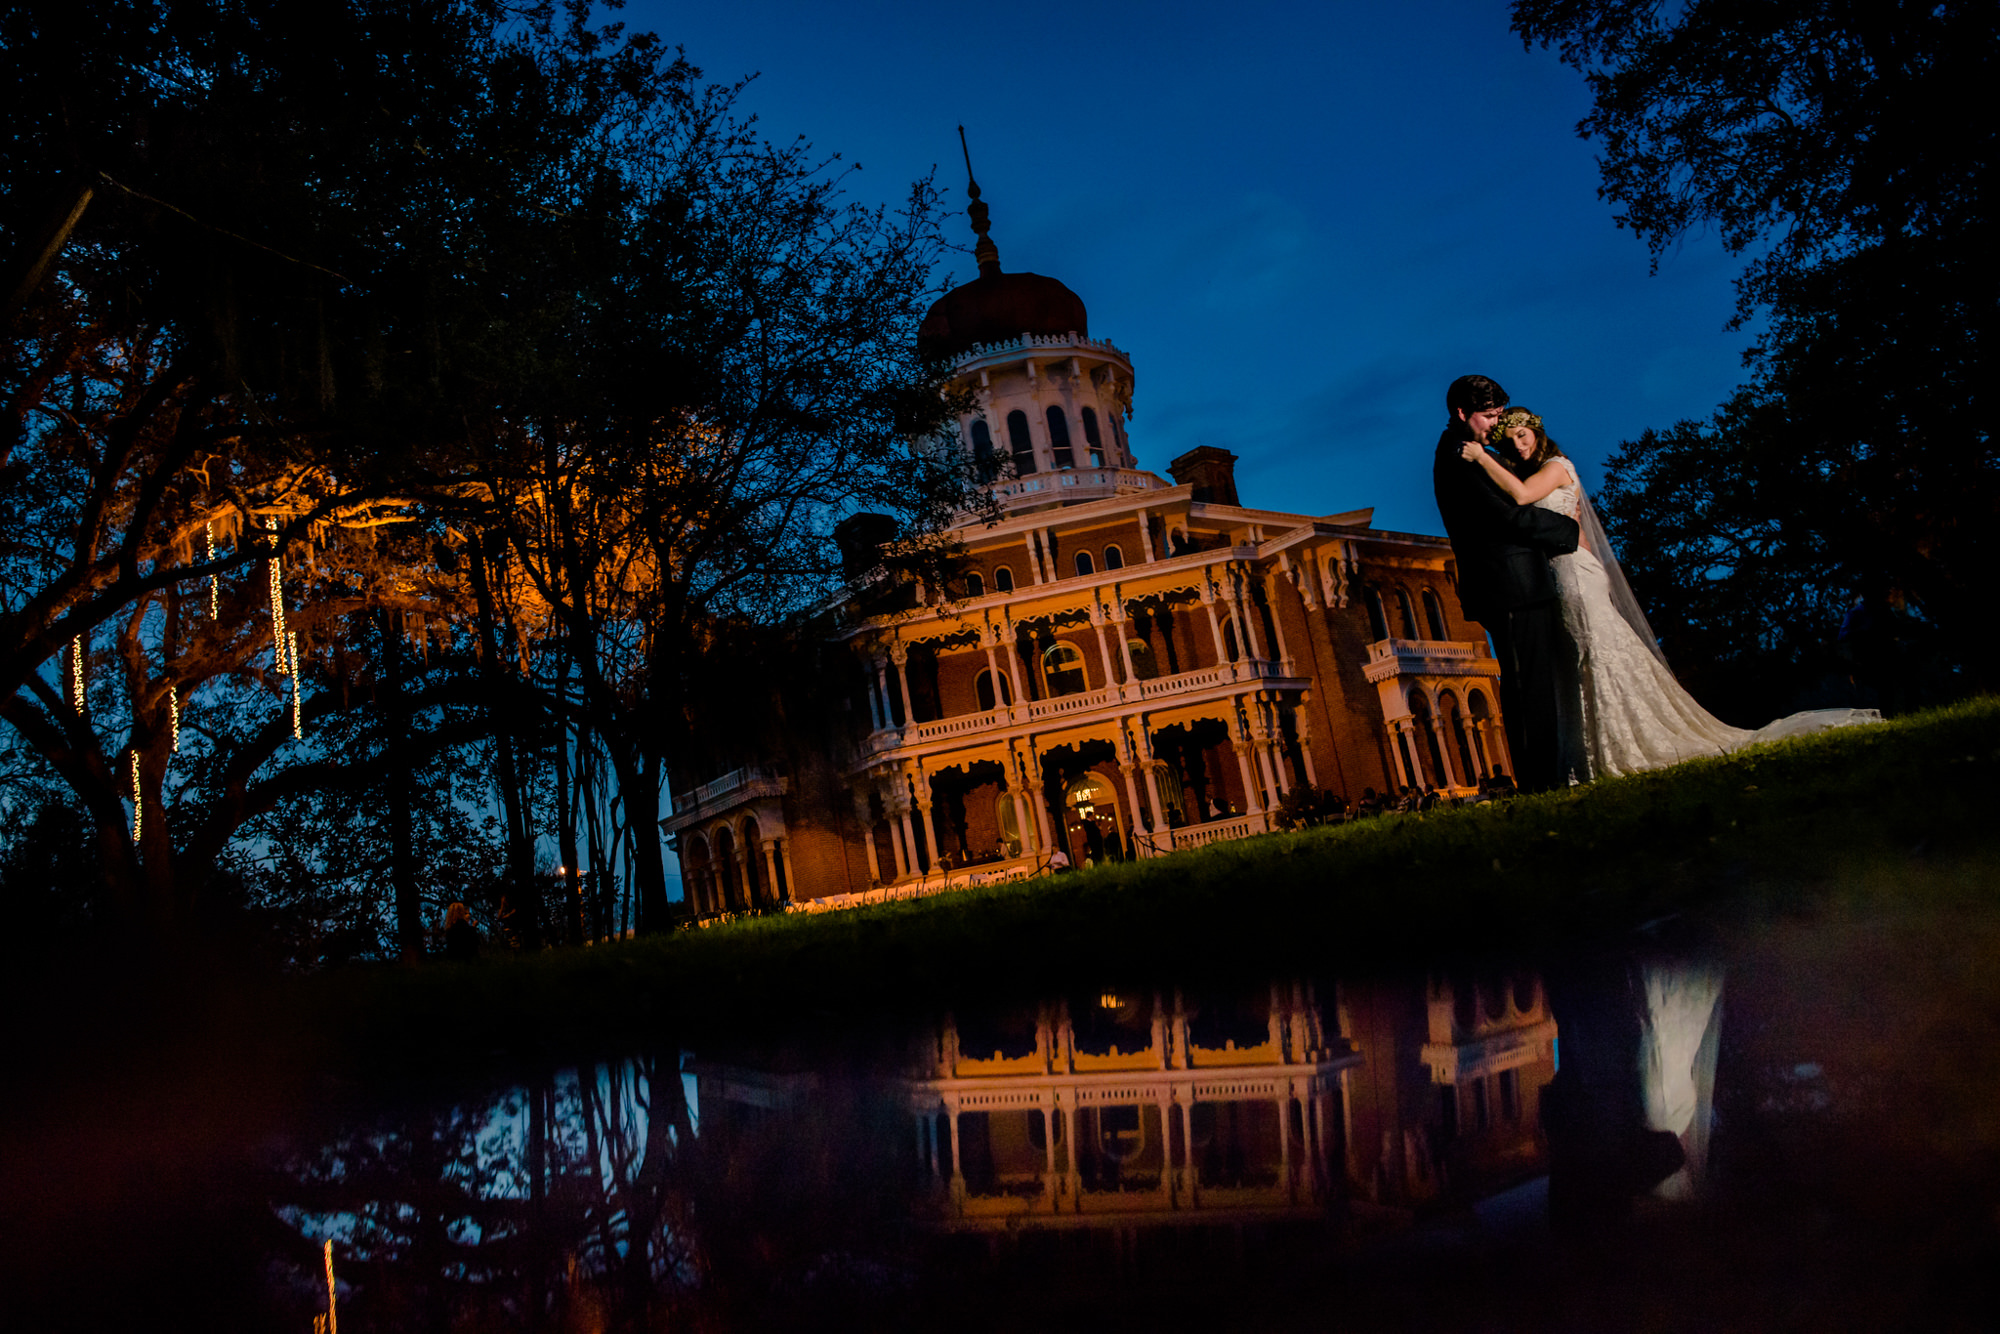 Bride and groom portrait at dusk in front of historic building, by Chrisman Studios